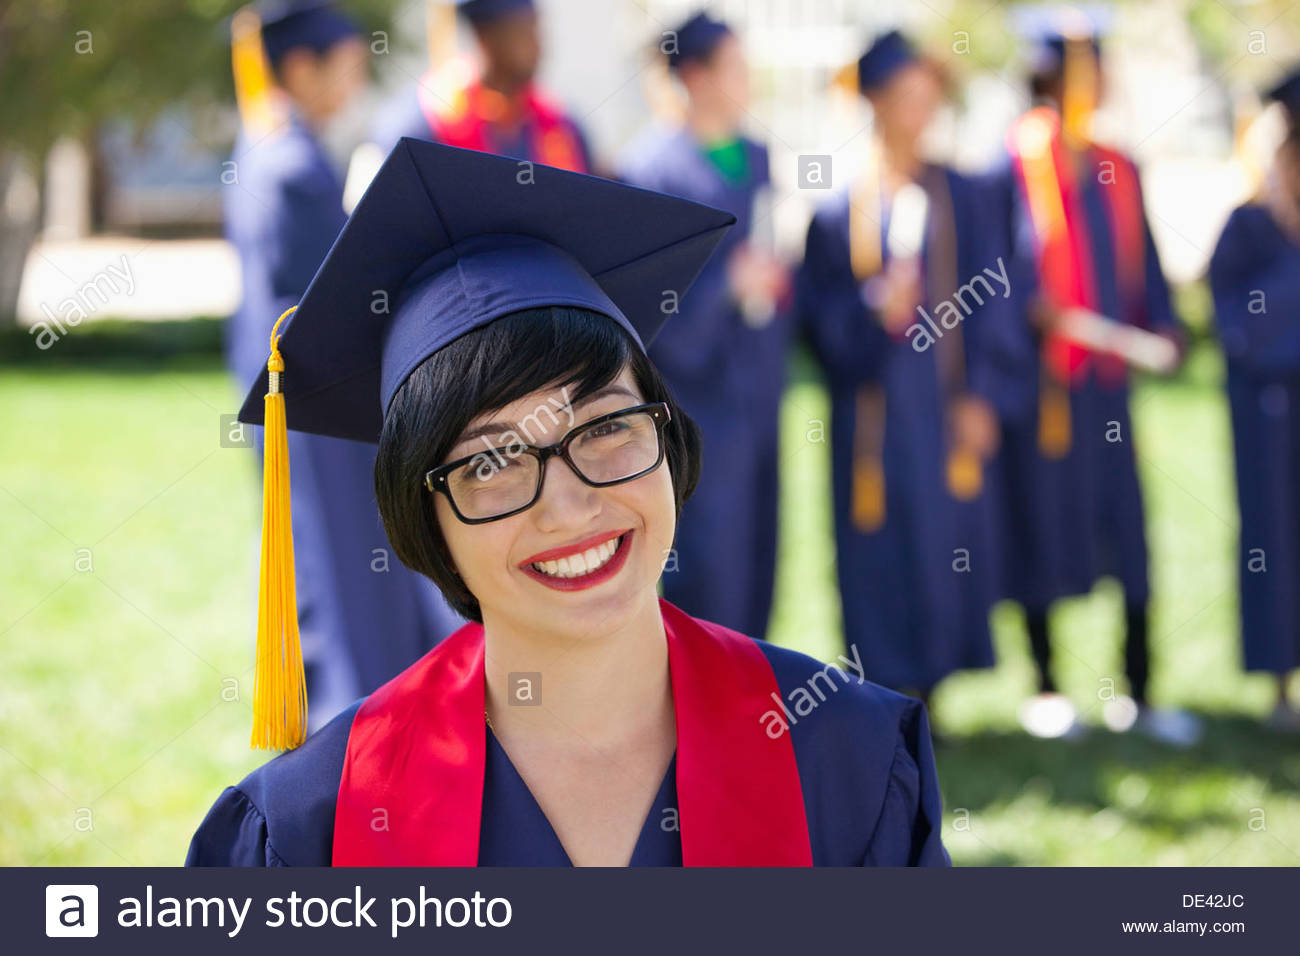 Graduate in cap and gown - Stock Image